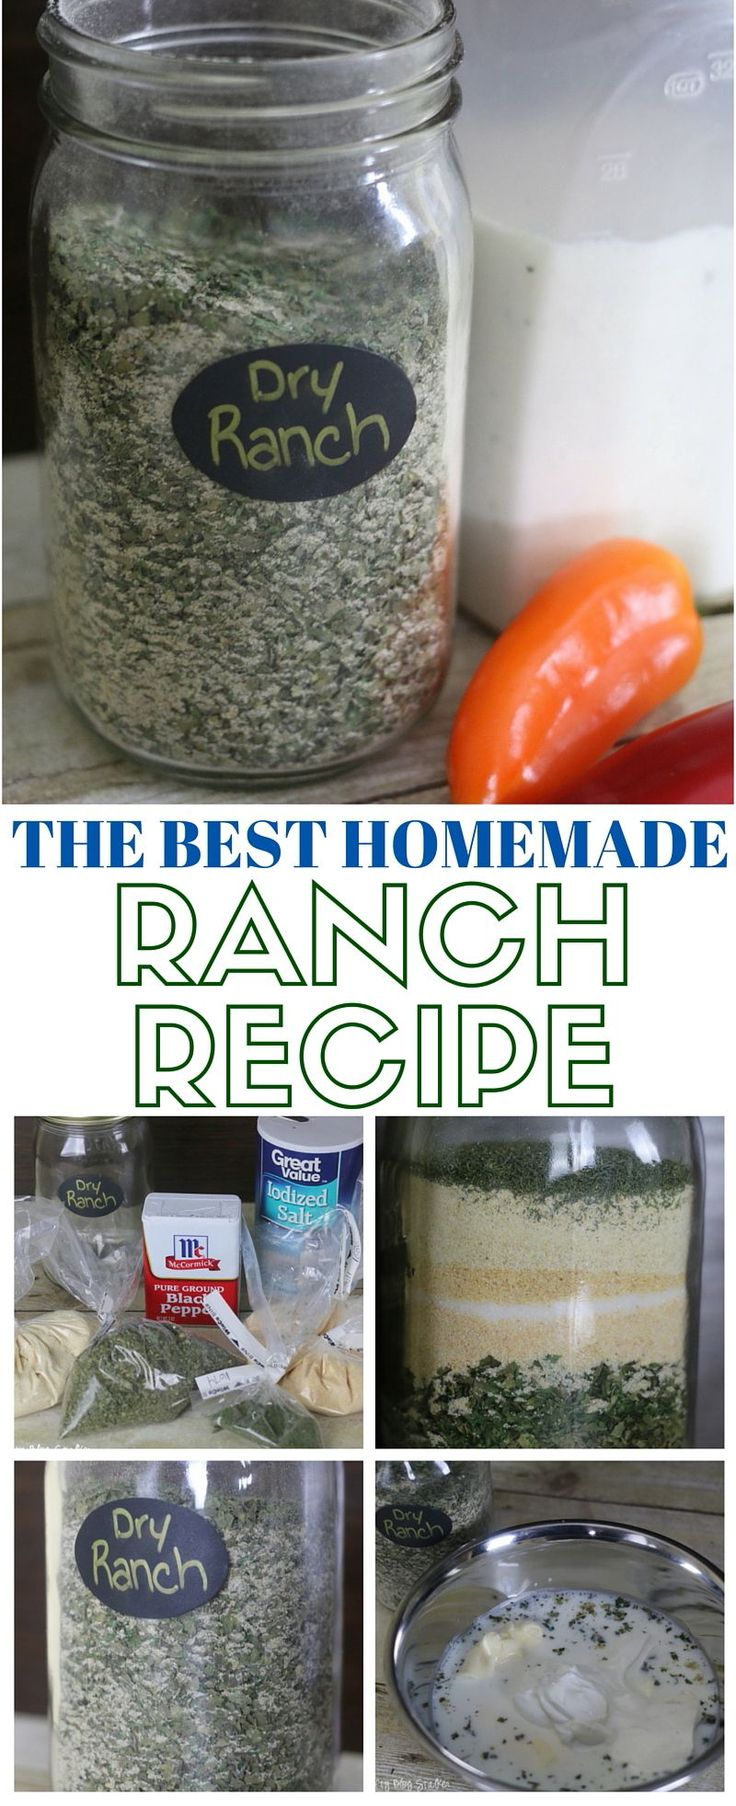 Make delicious homemade ranch with this dry ranch recipe mix. Combine with wet ingredients for a delicious, creamy ranch dressing or dip.